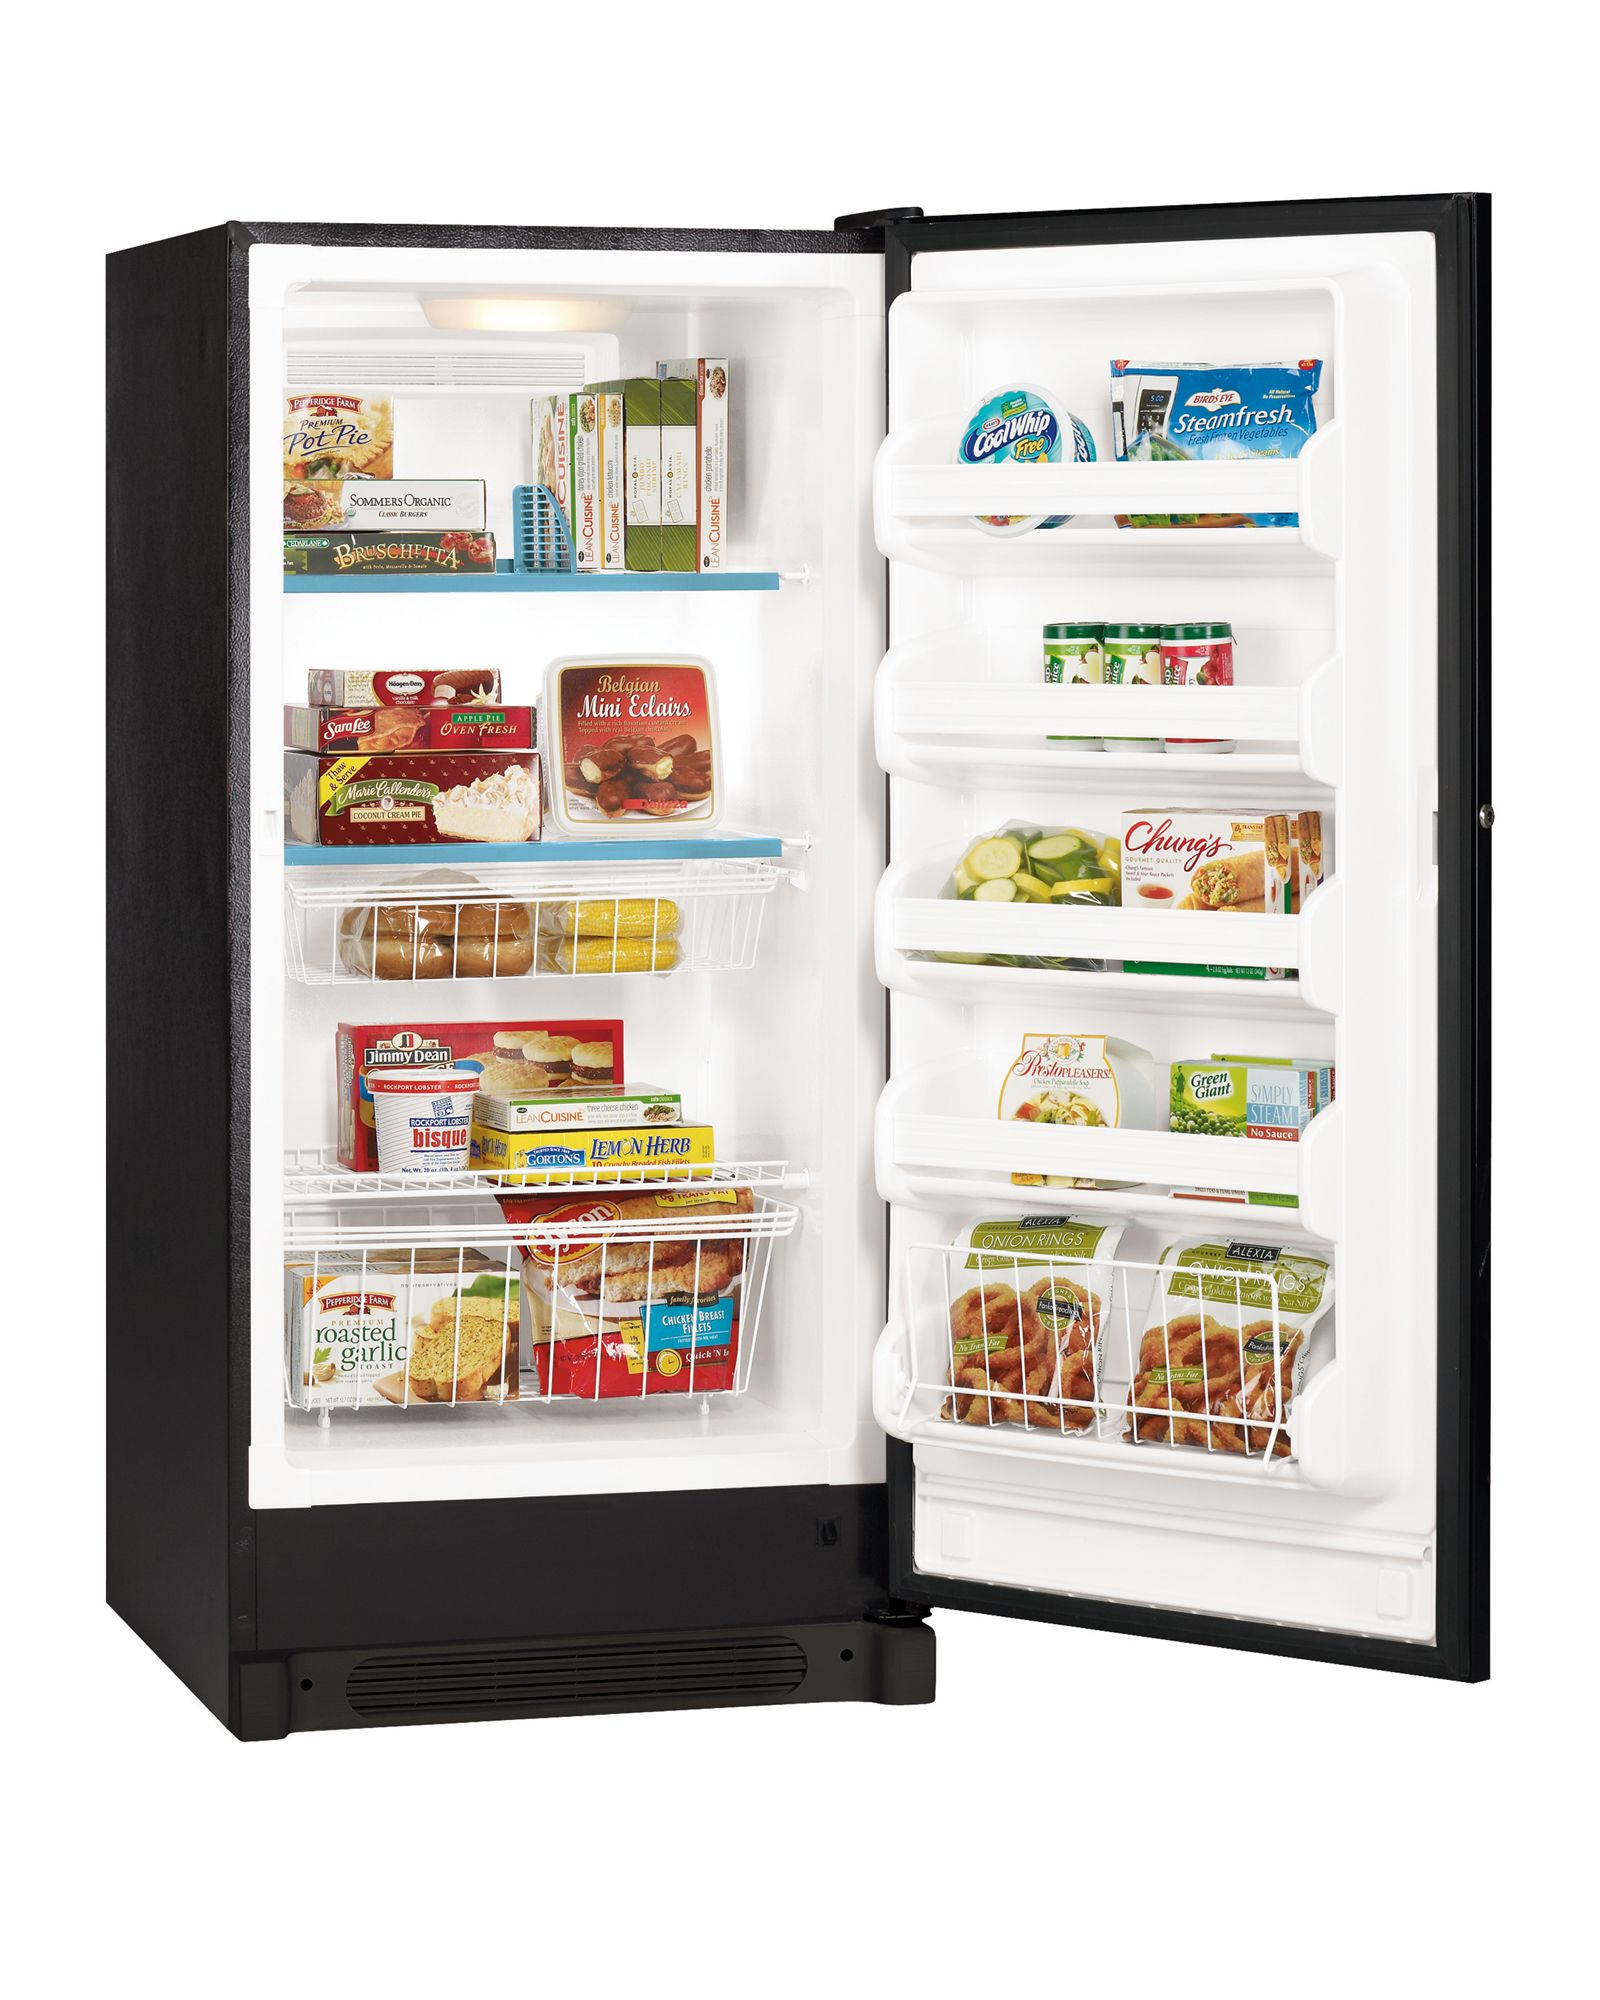 Frigidaire 13.7 cu. ft. Upright Freezer (FFU14F7H)